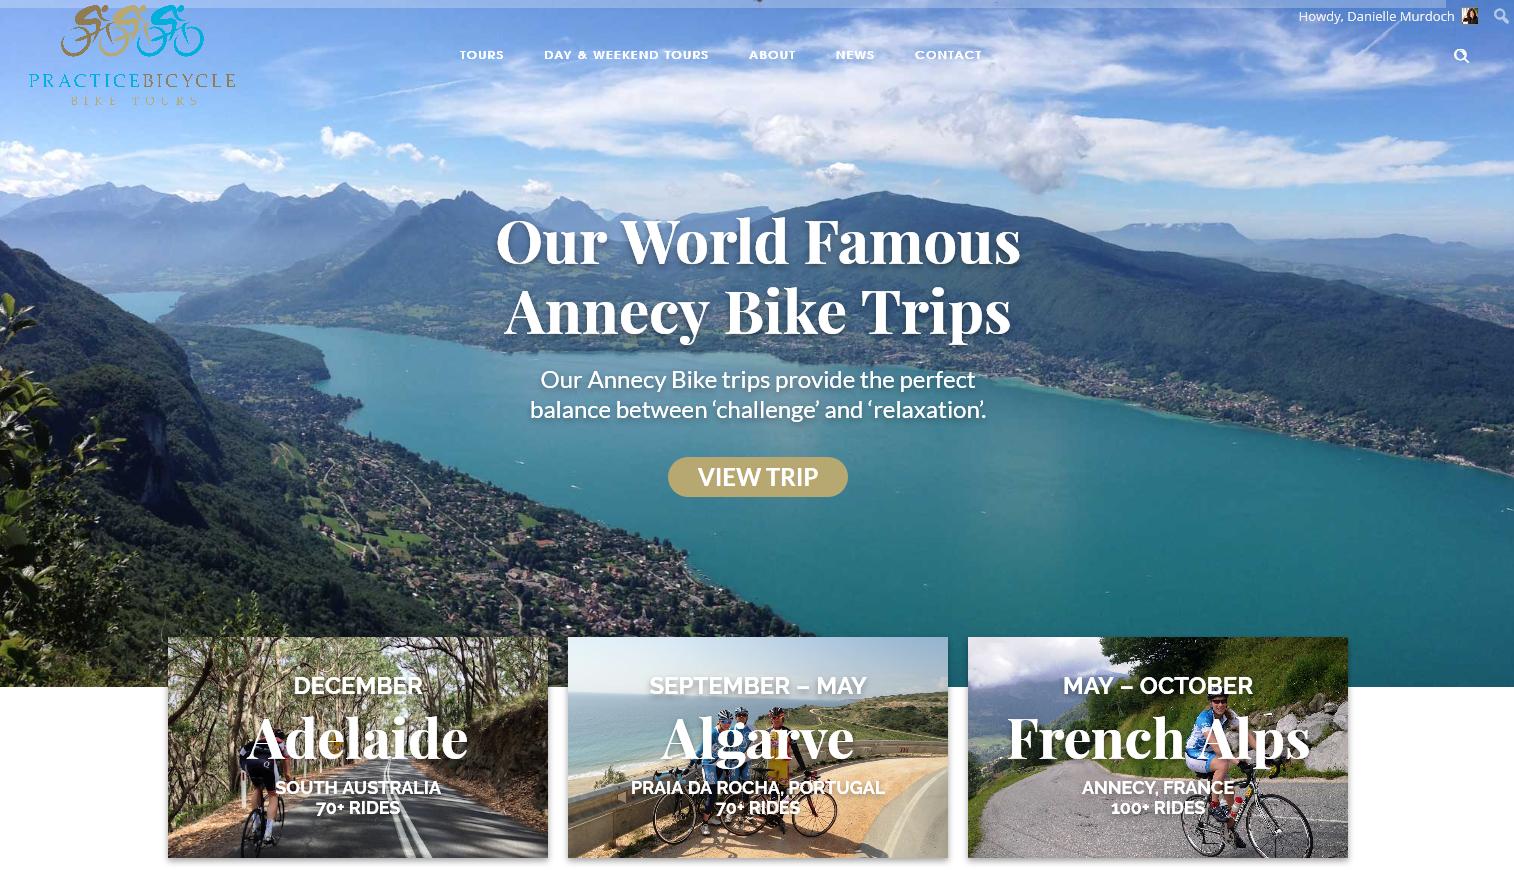 NEW TOURS & WEBSITE from Practice Bicycle Tours